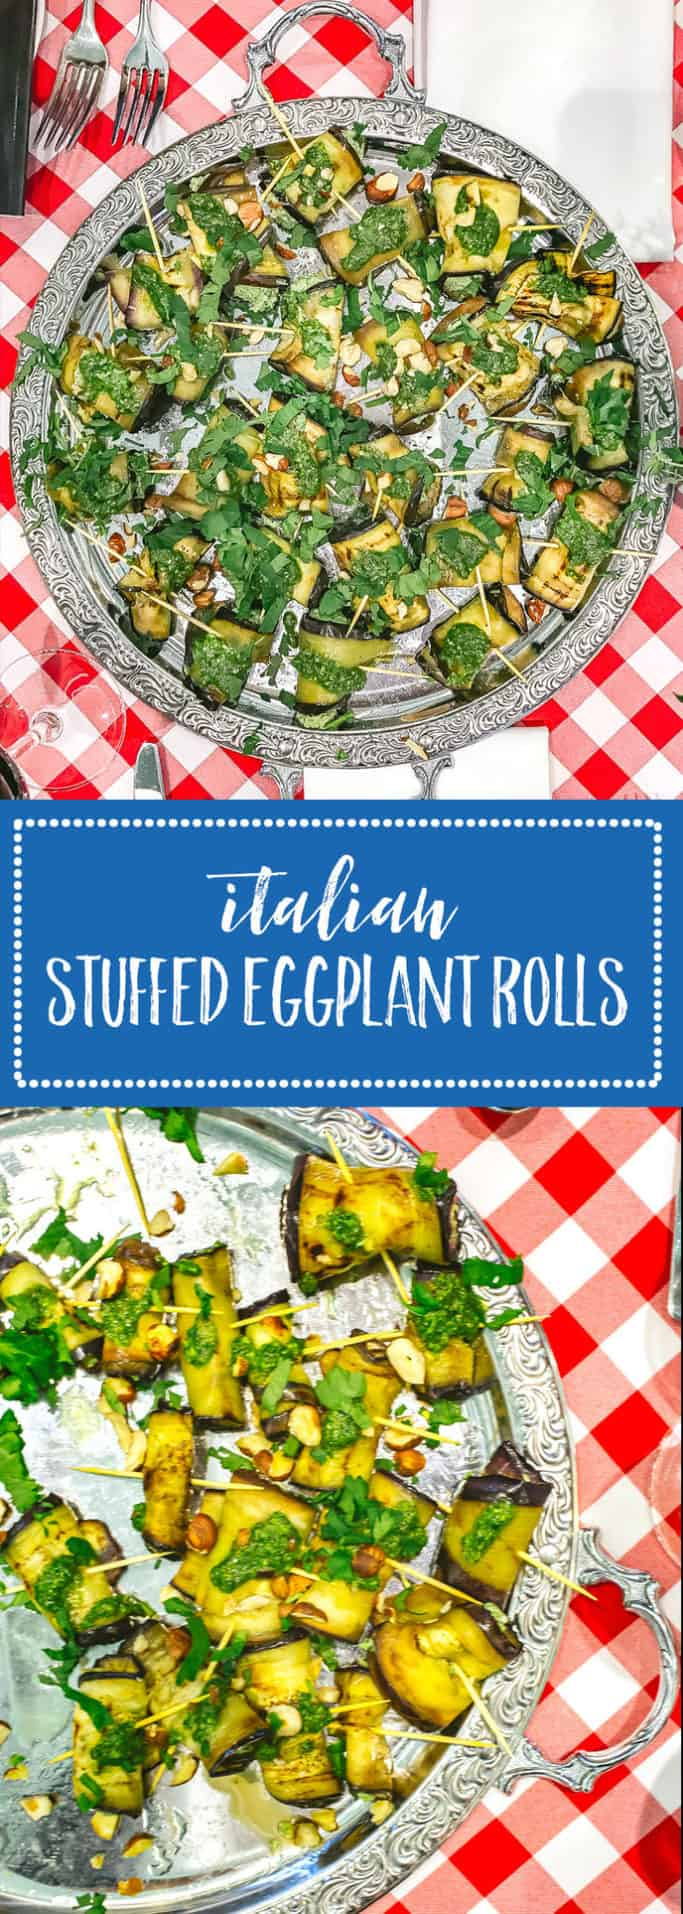 These Italian stuffed eggplant rolls are a must-have for your next summertime grill meal